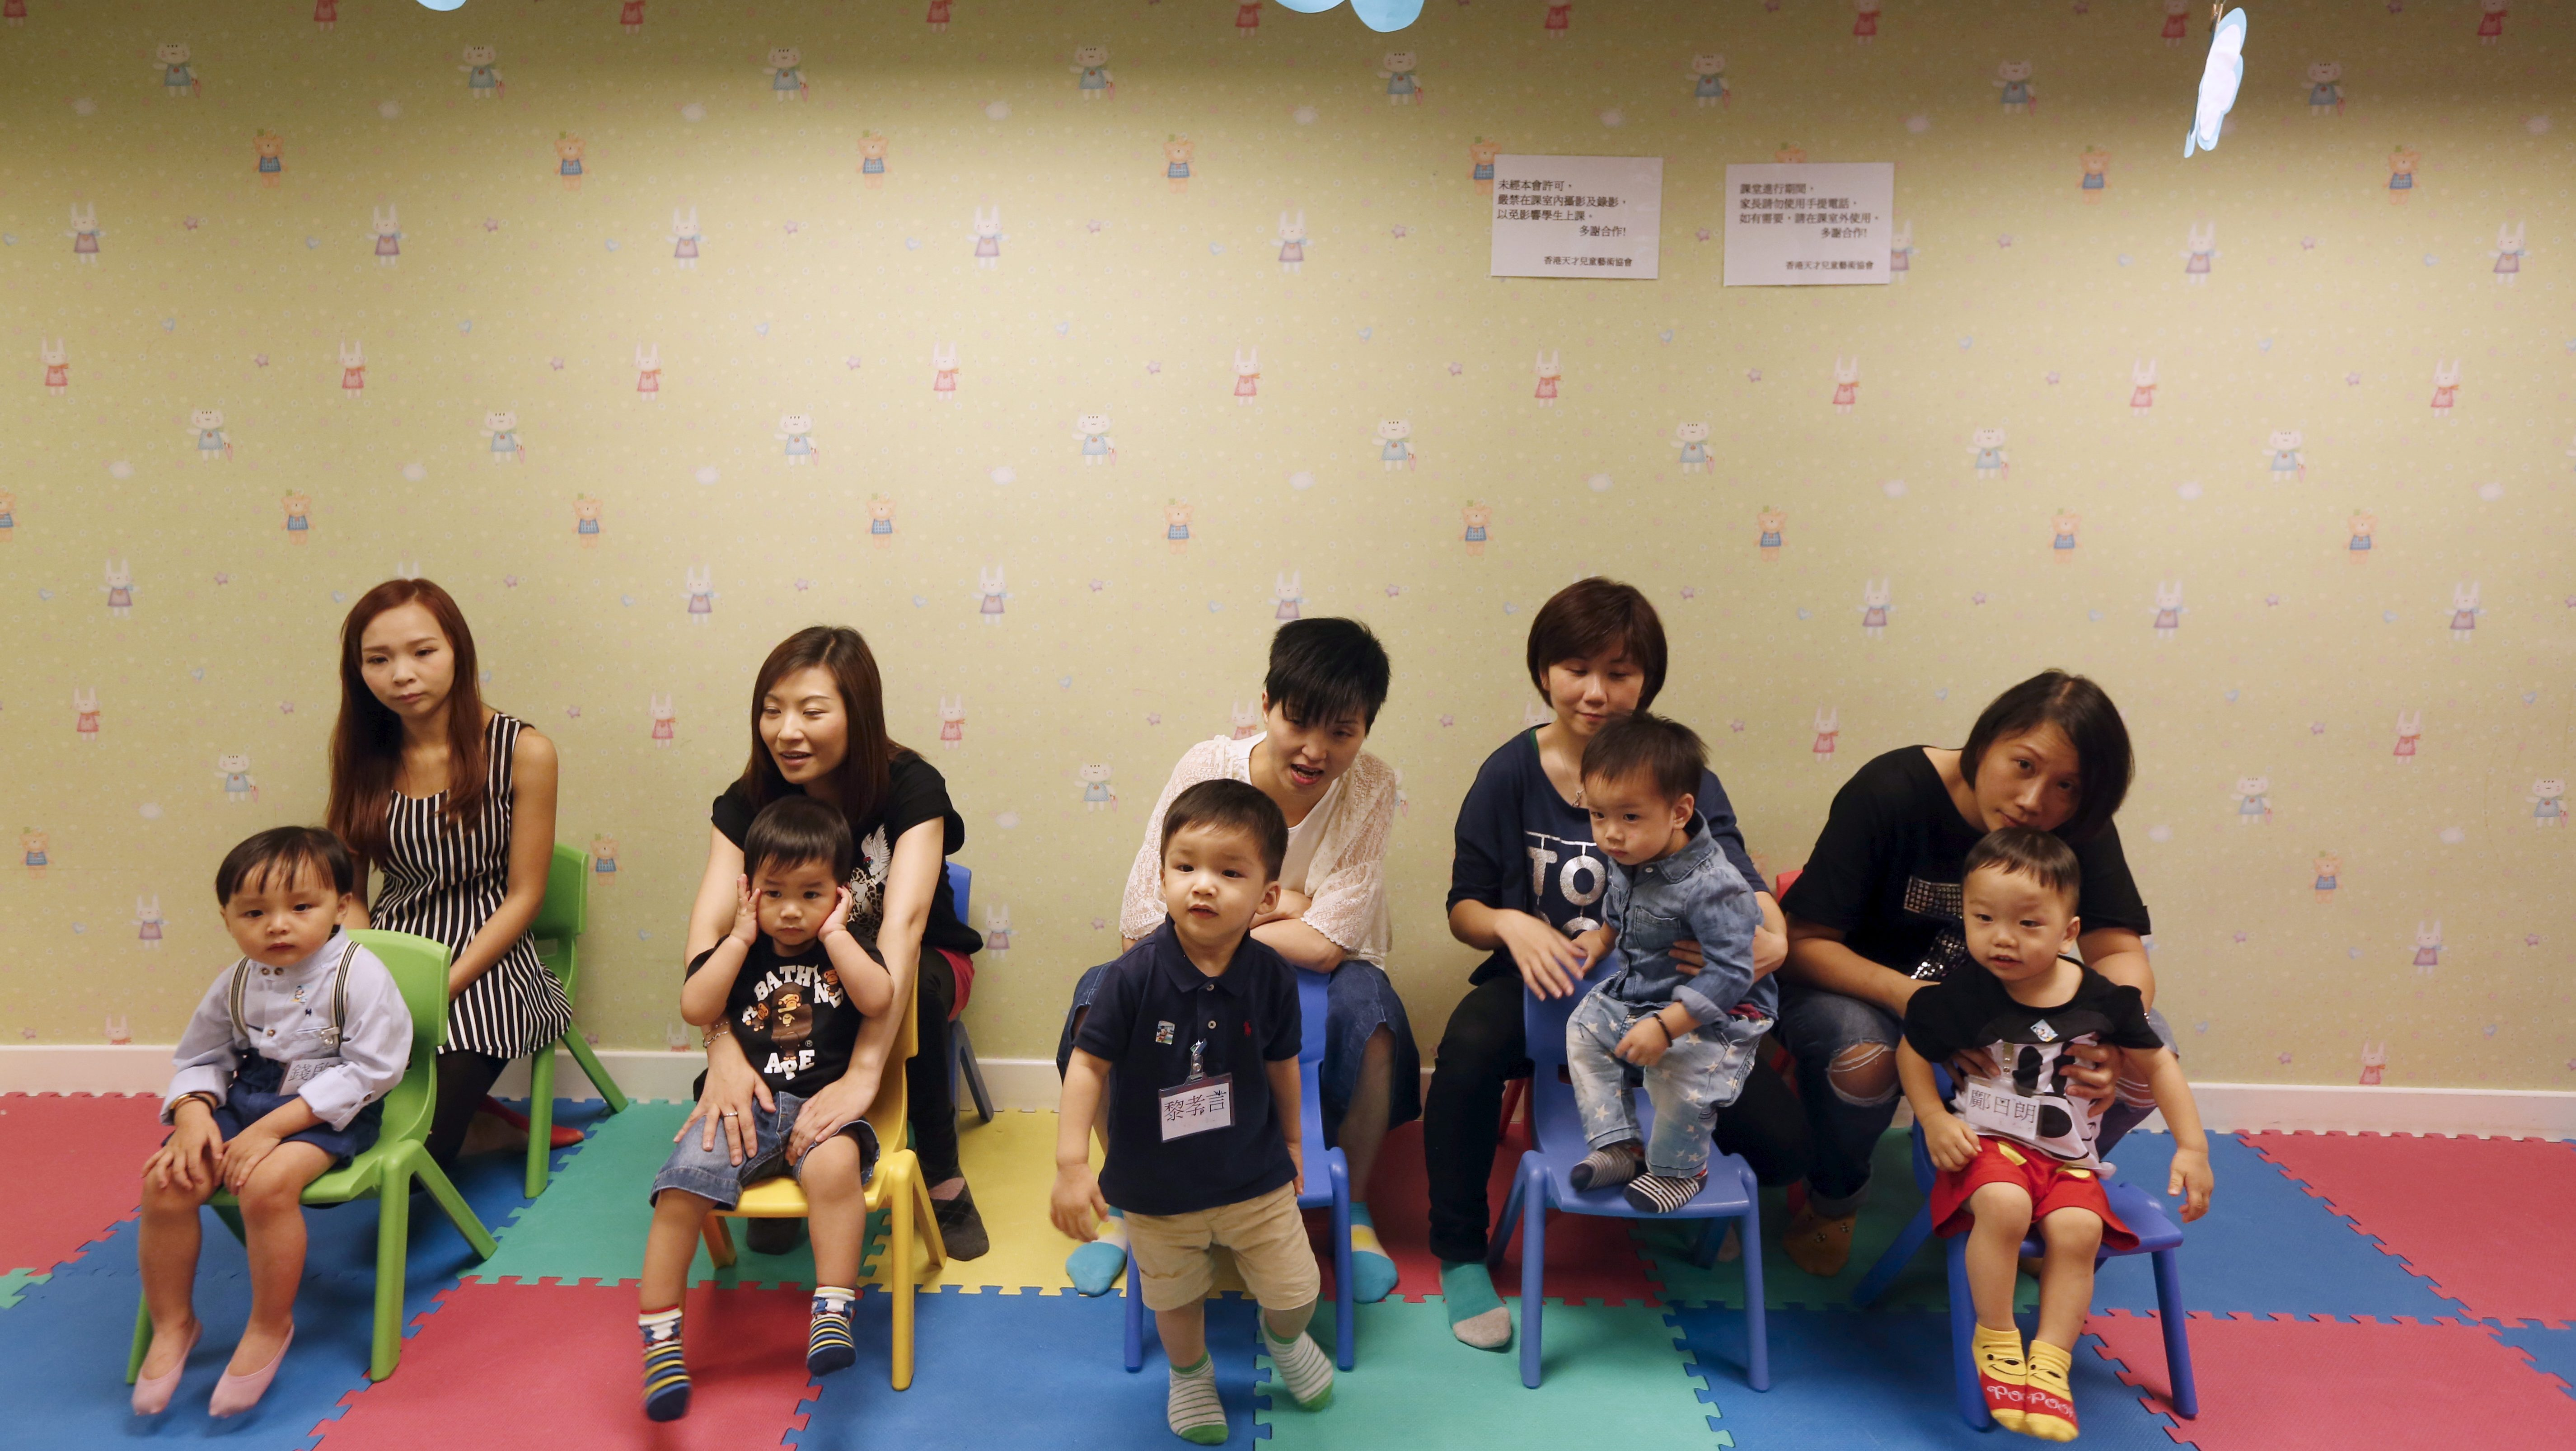 Mothers and their sons participate in a specialized class preparing toddlers for kindergarten interviews in Hong Kong, China May 17, 2015. Parents believe that getting a place in a good kindergarten will help them secure a spot in a good primary and secondary school and pave the way for a good start in life. With the competition being so fierce, sought-after kindergartens can be selective about who they let in. Pre-kindergarten interview courses train them to be disciplined, responsive and polite through games, music and dance. They also offer one-on-one mock interview sessions. Picture taken May 17, 2015. REUTERS/Bobby Yip - RTX1E7O9